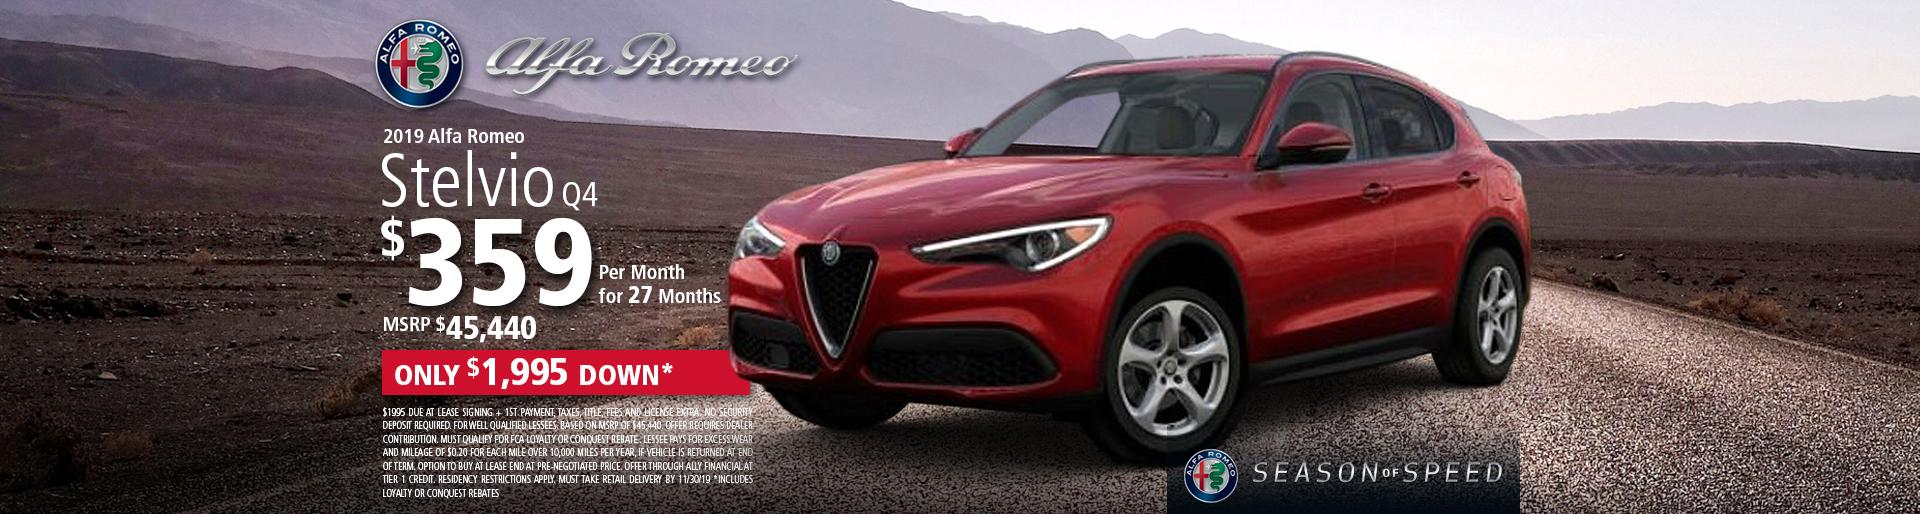 2019 Alfa Romeo Stelvio Q4 $359 per month for 27 months. Only $1,995 Down*